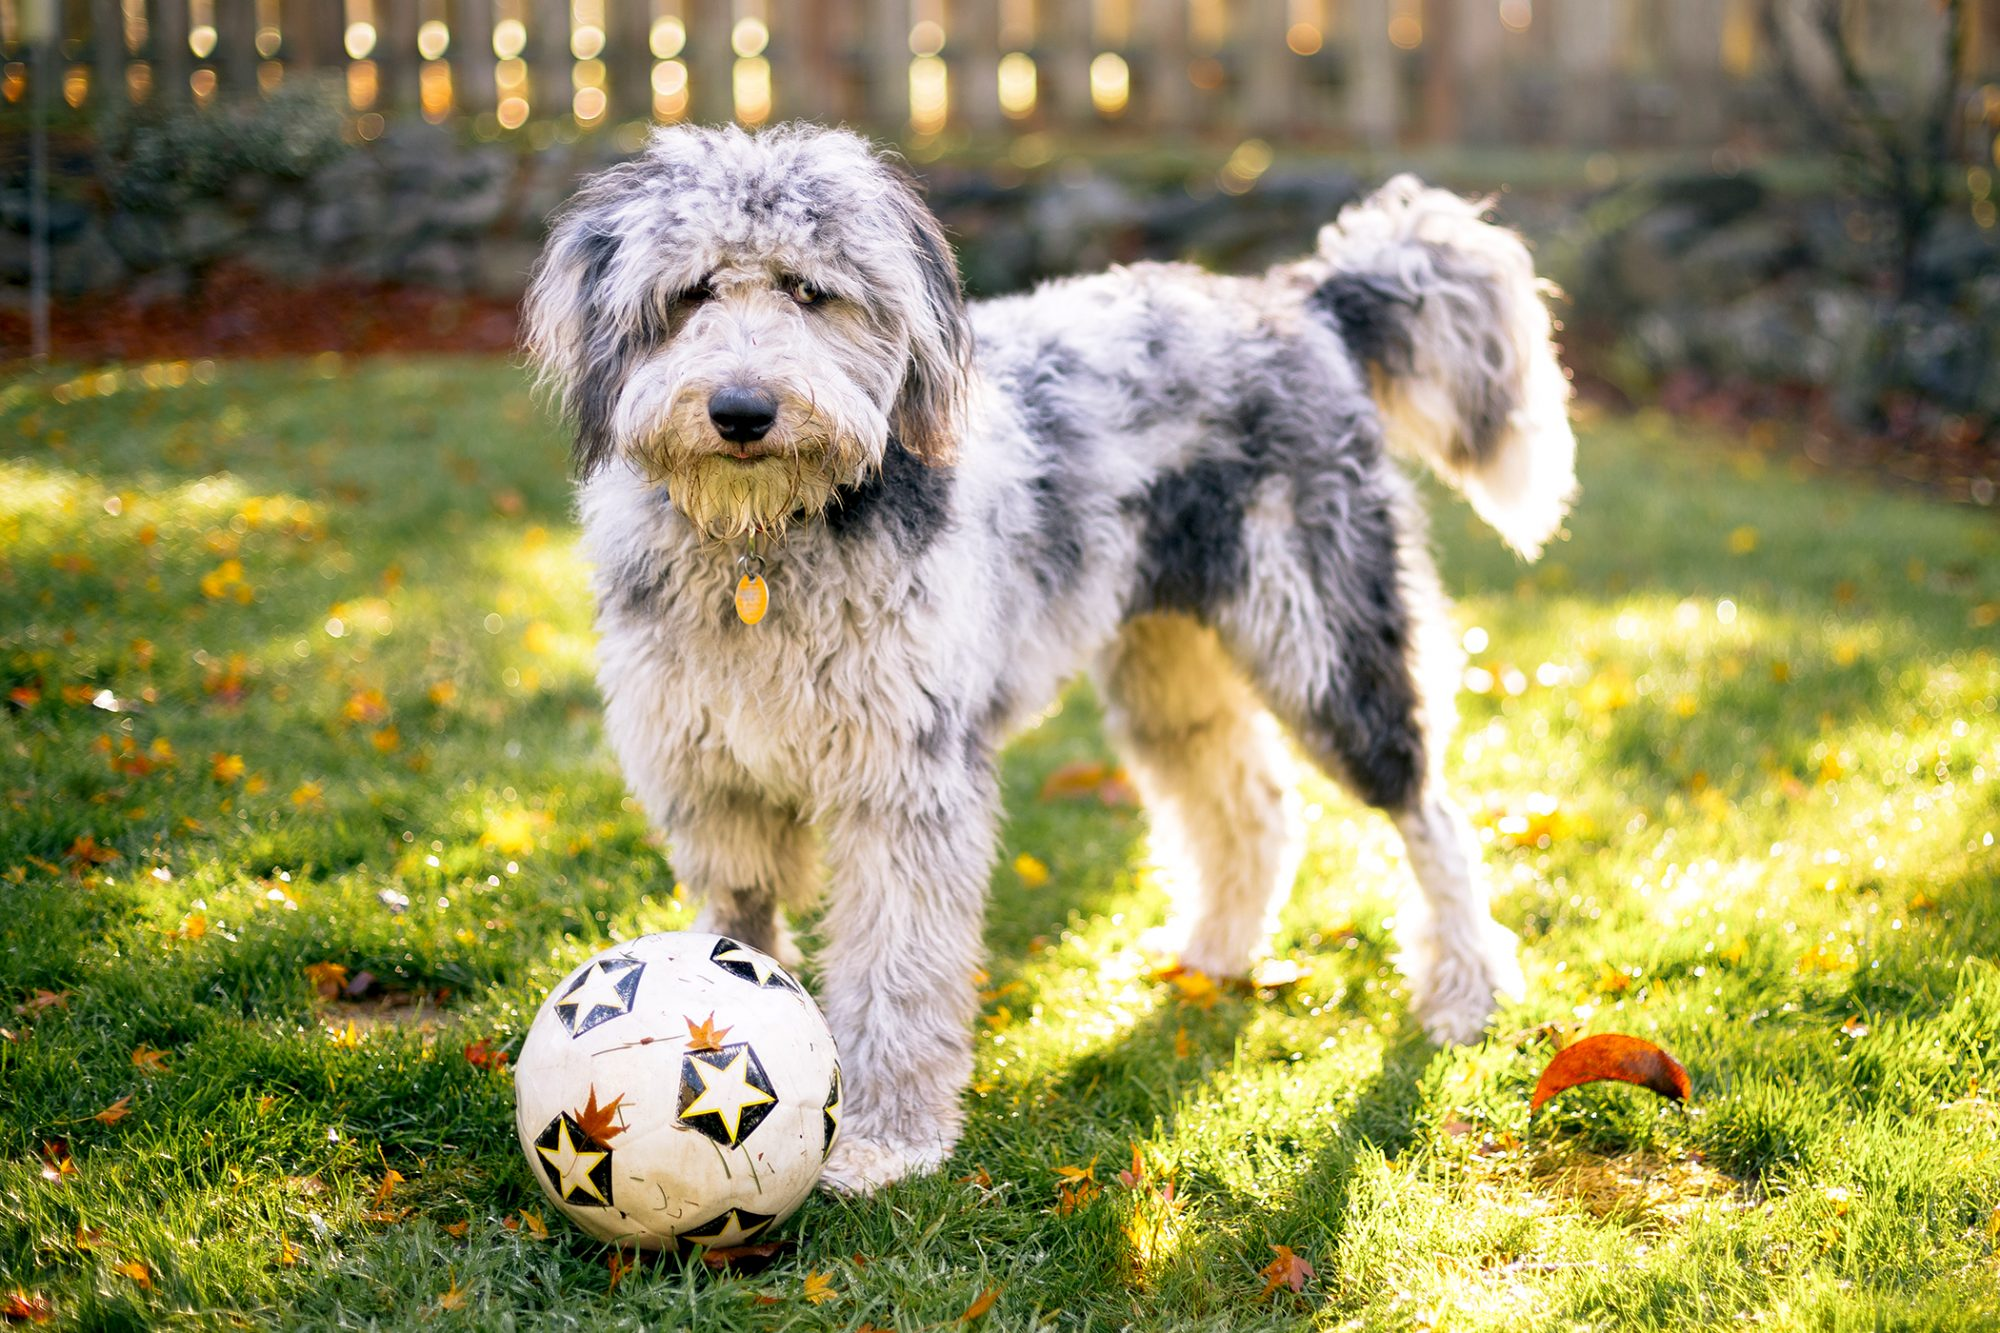 Cream and charcoal aussiedoodle plays with soccer ball outside in yard